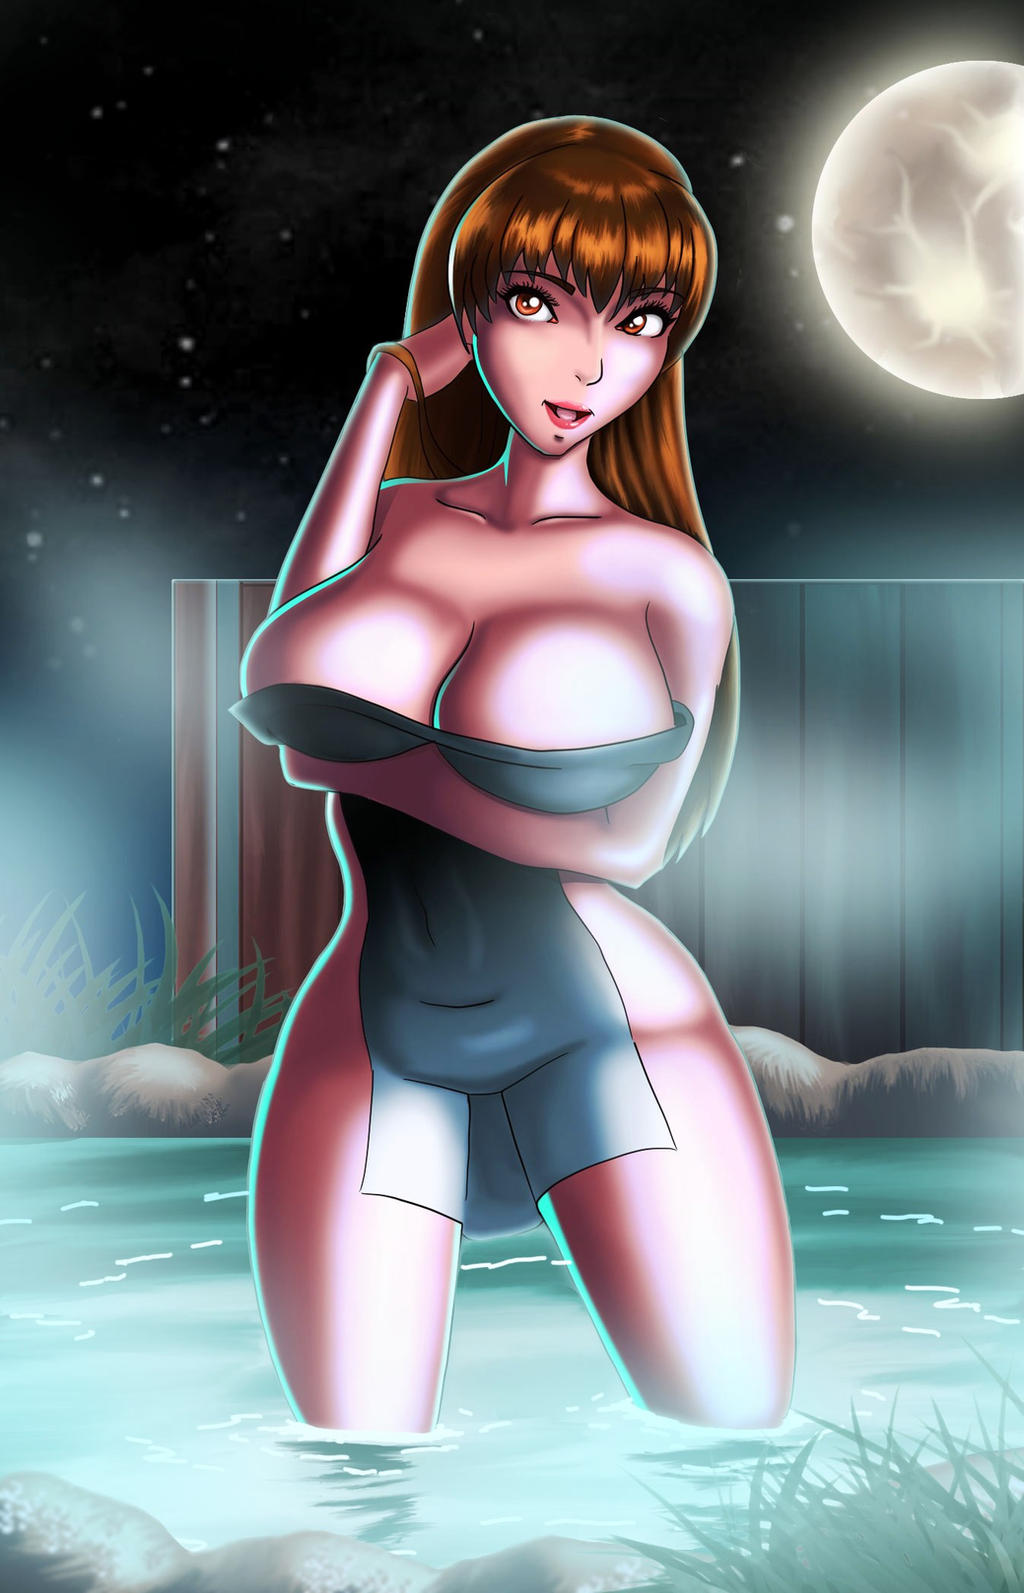 Dead or alive Kasumi in the night (for real) by chacrawarrior